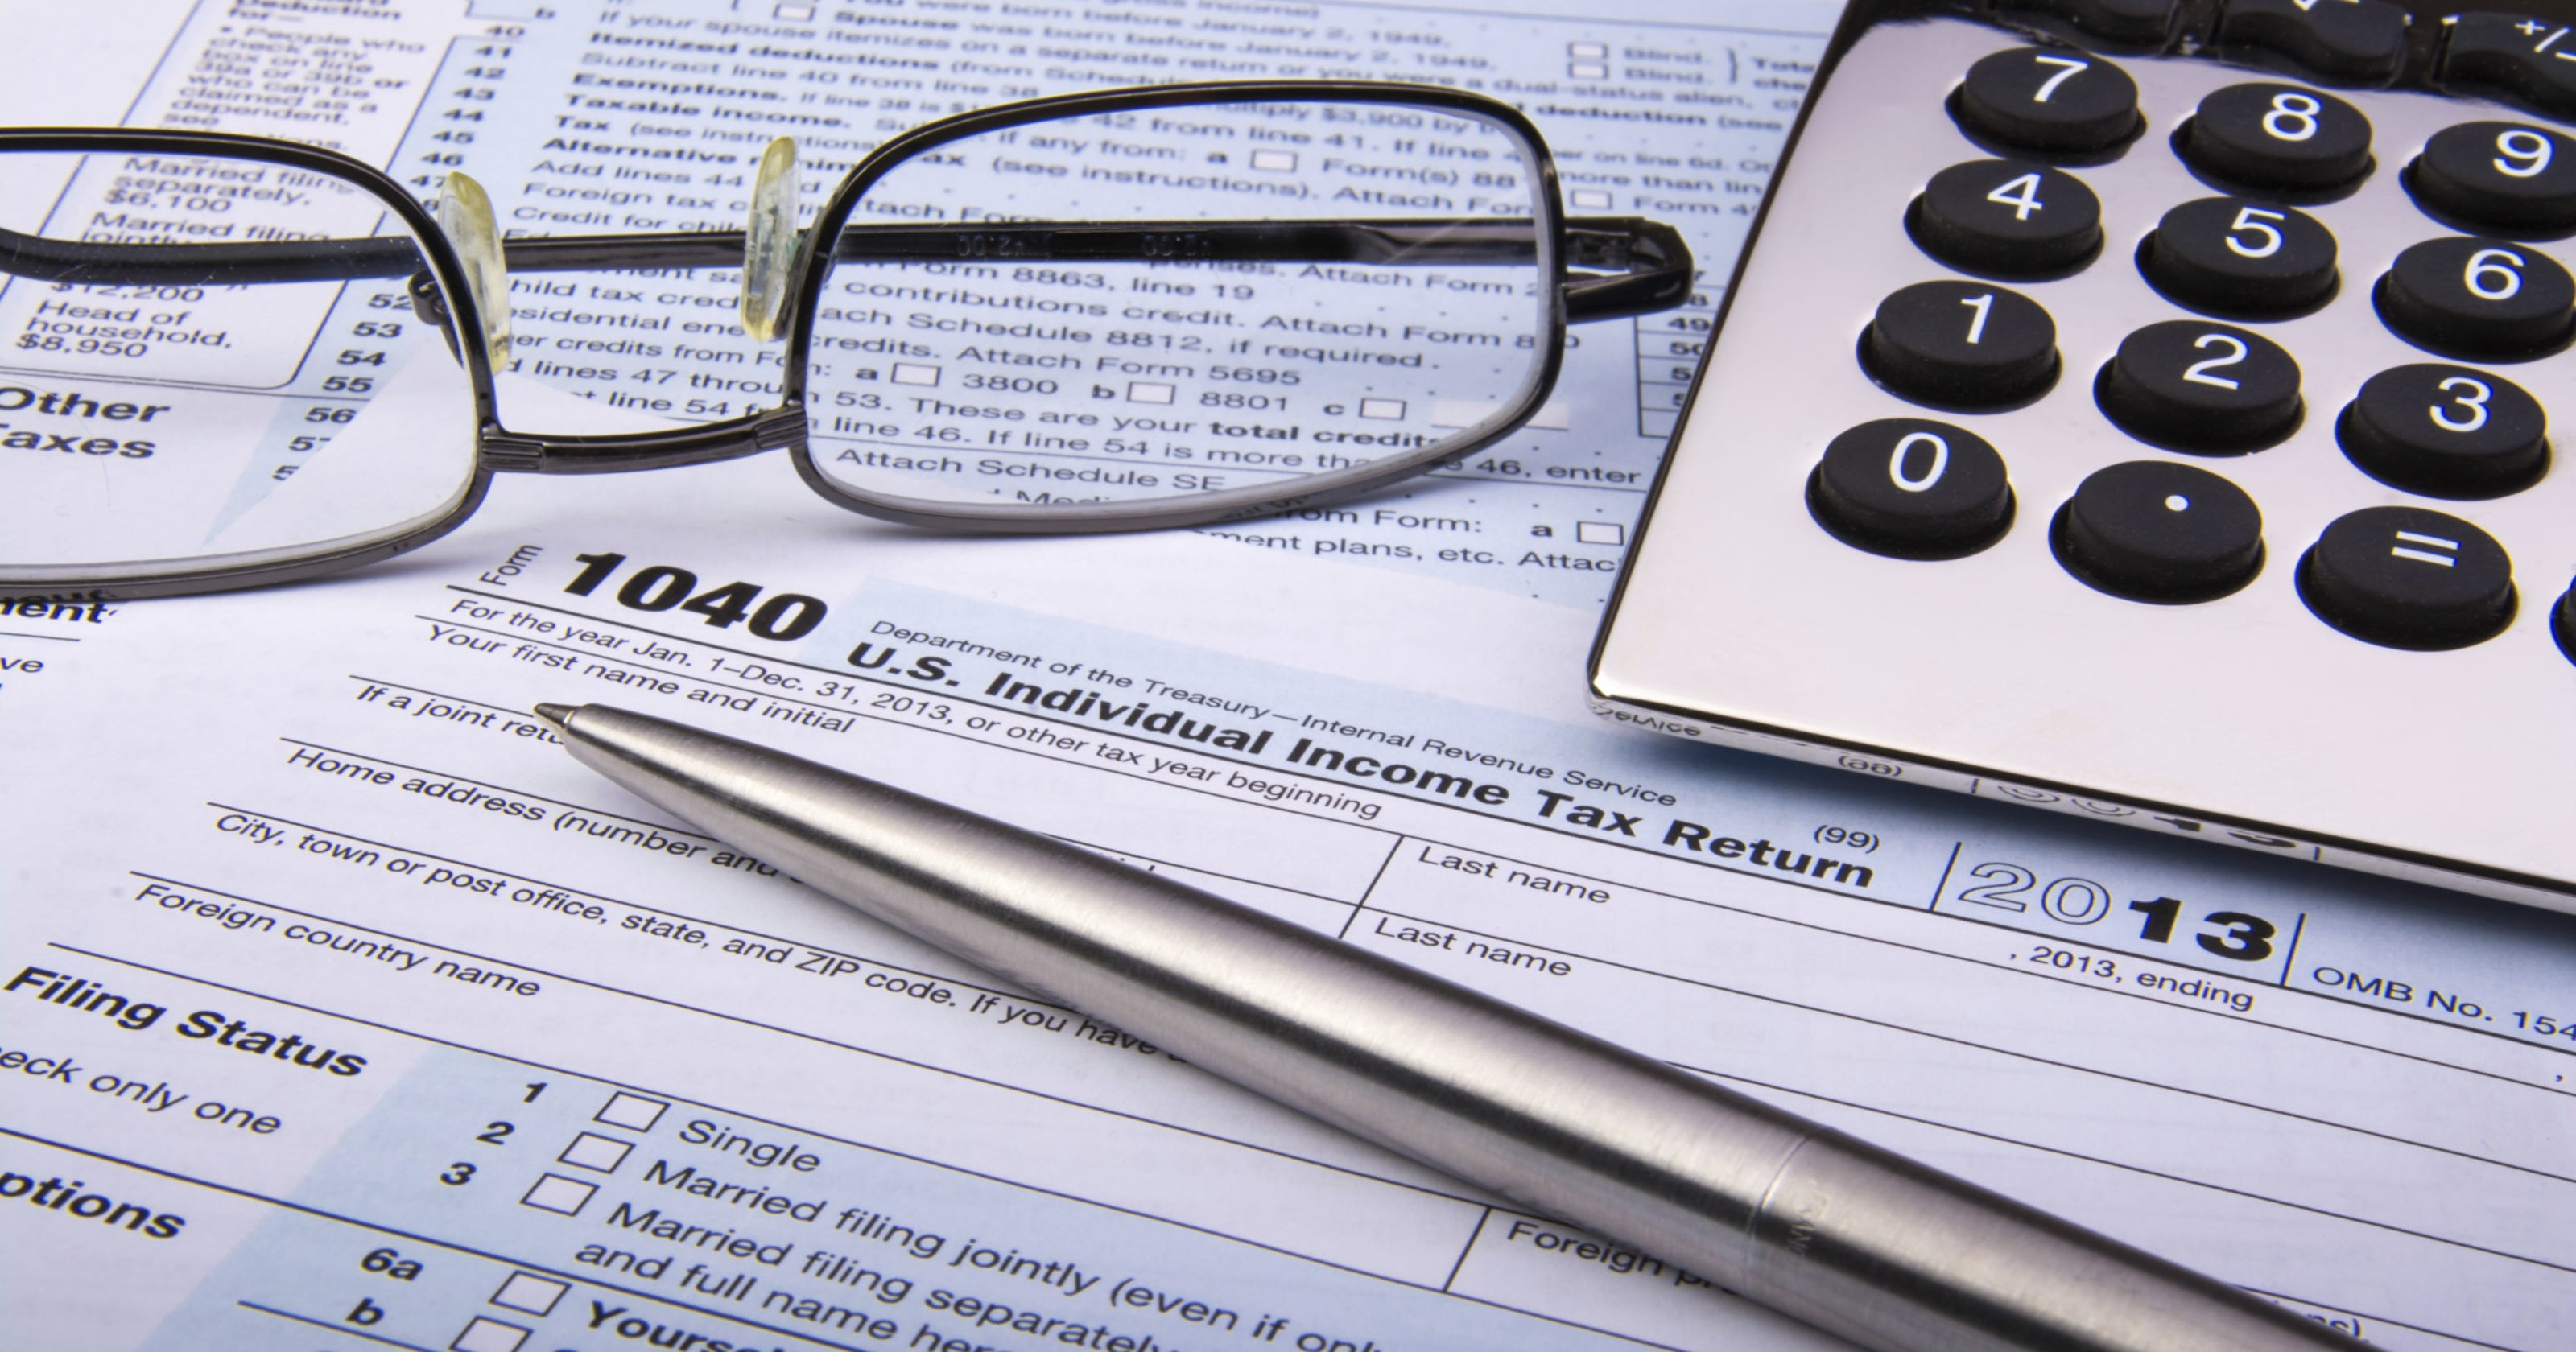 Tips For Filing 2019 Income Taxes While The Government Is Shutdown